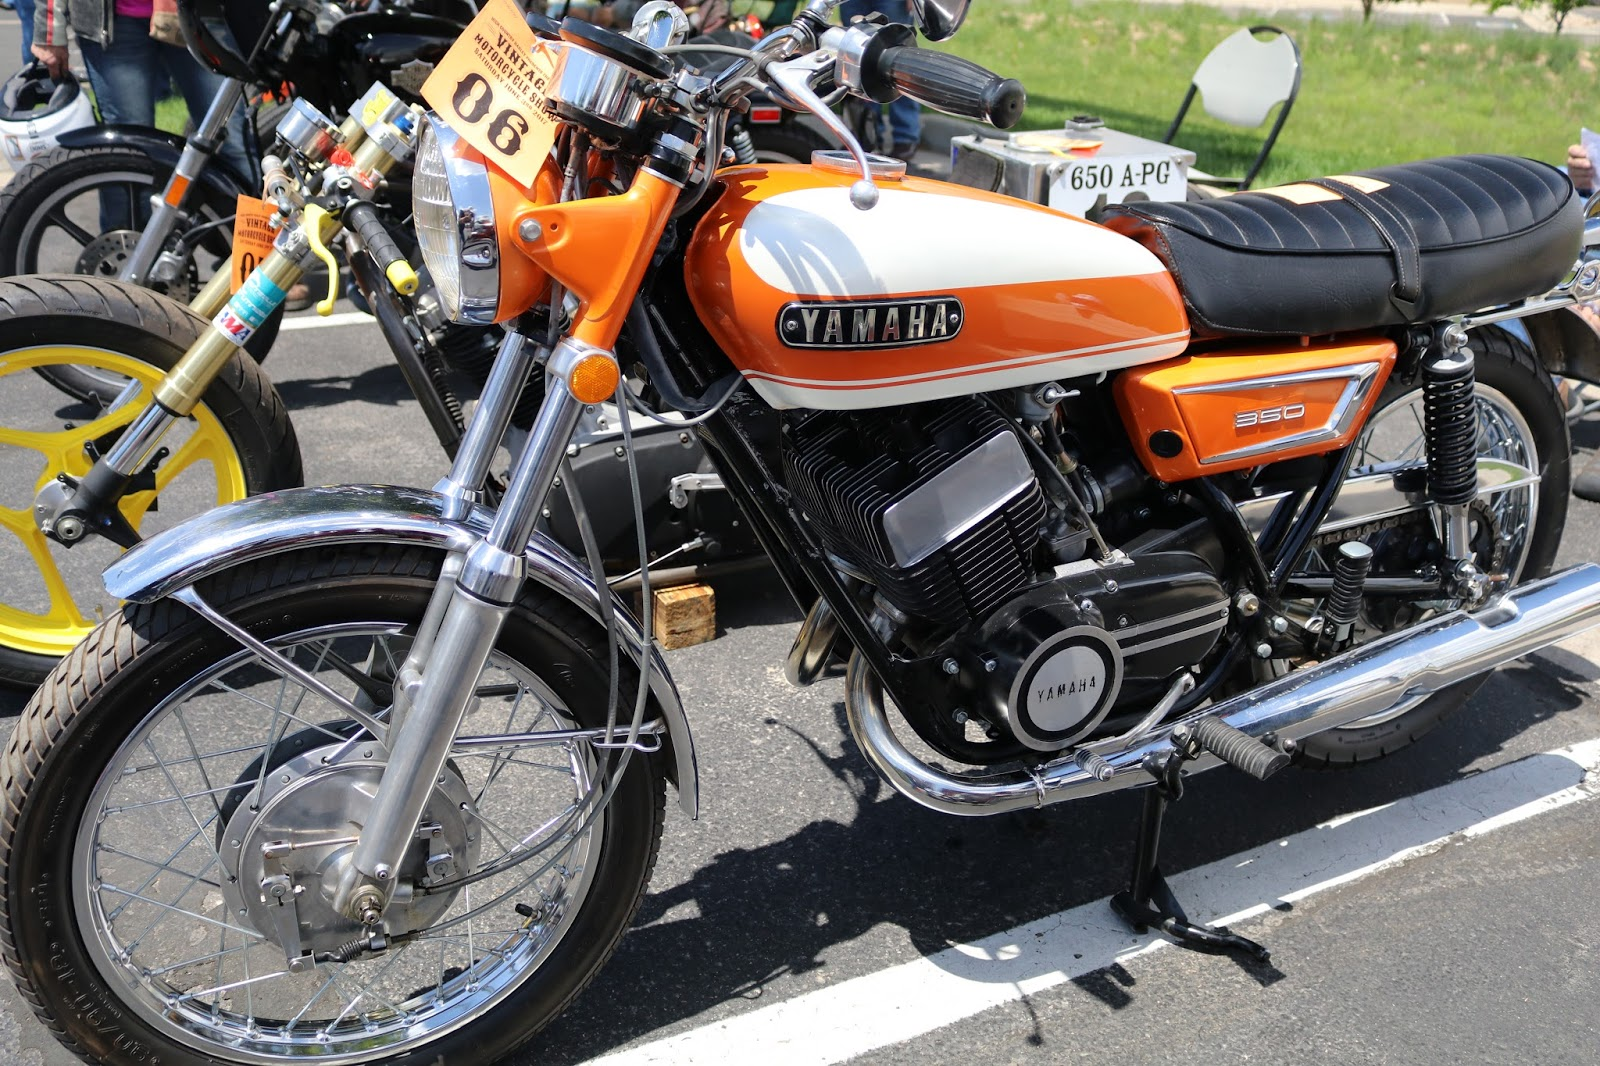 medium resolution of 1972 yamaha r5 on display at the 2017 vintage motorcycle show frederick co